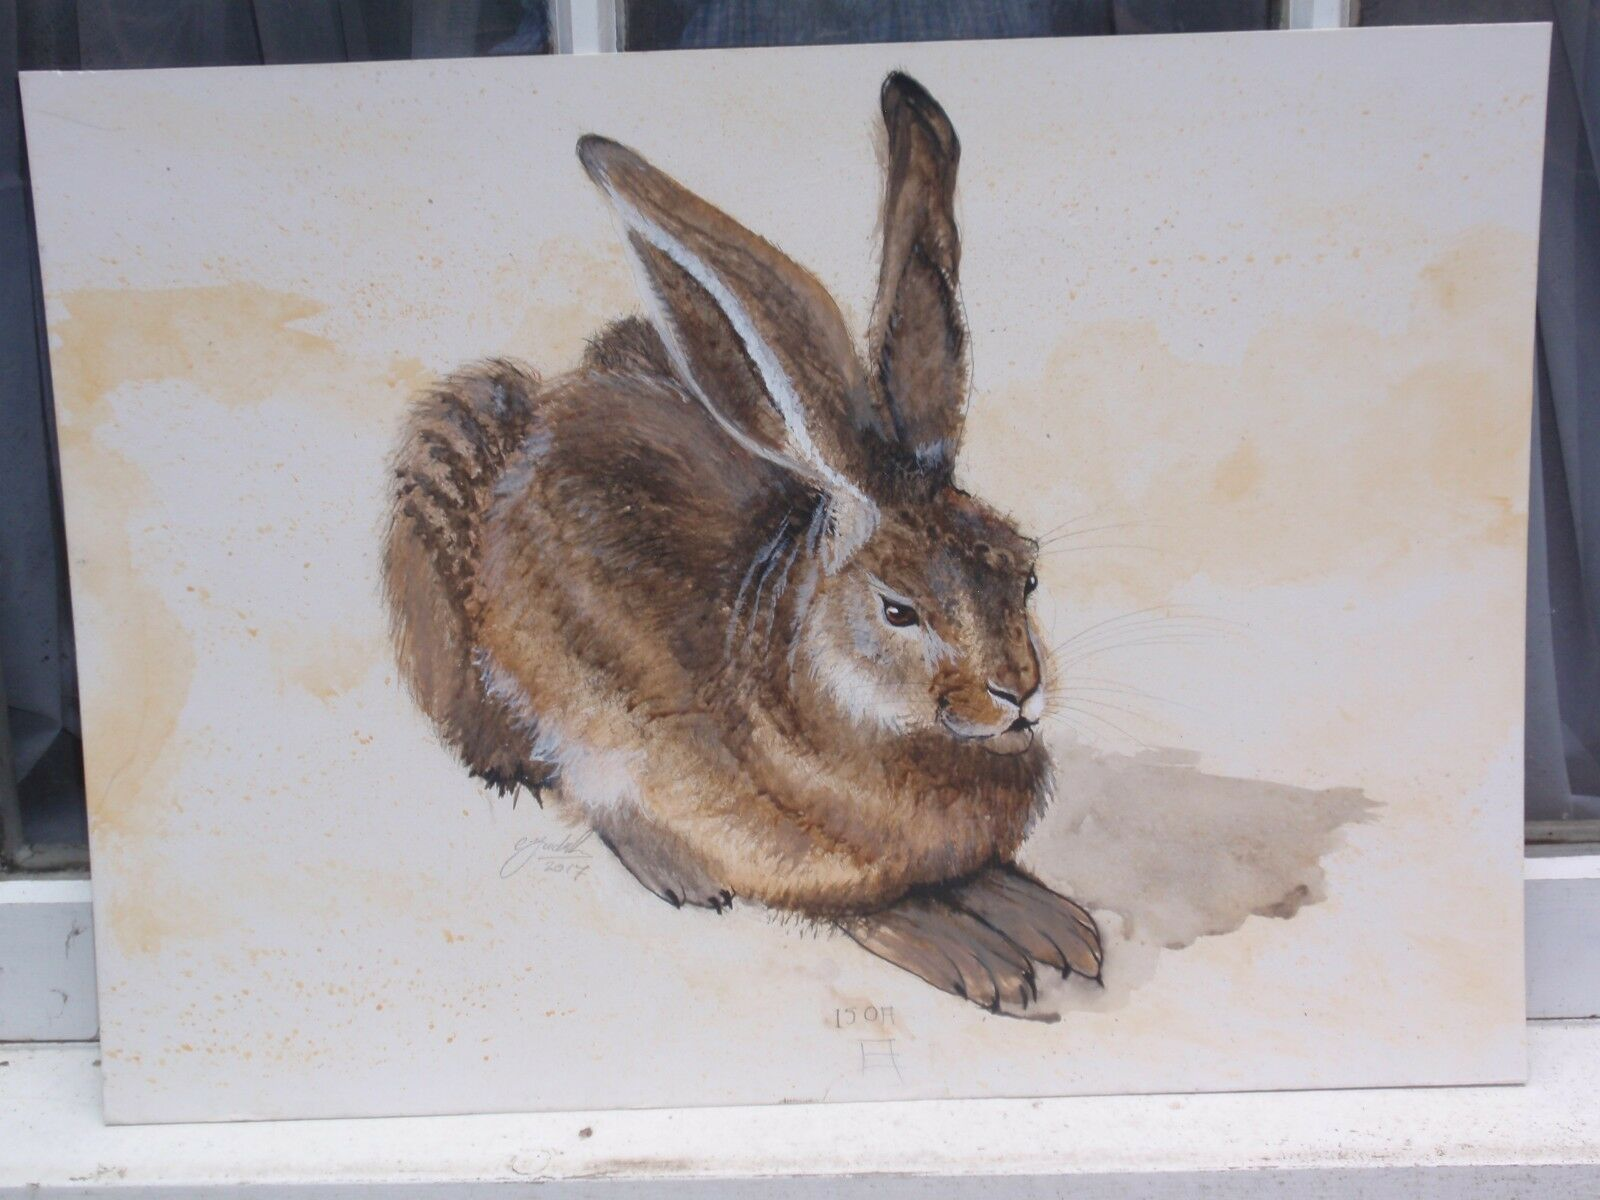 CLIVE FrotRIKSSON AFTER ALBERT DURER RABBIT SIGNED WATERFarbe PAINTING PAINTING PAINTING ON BOARD 19ea28